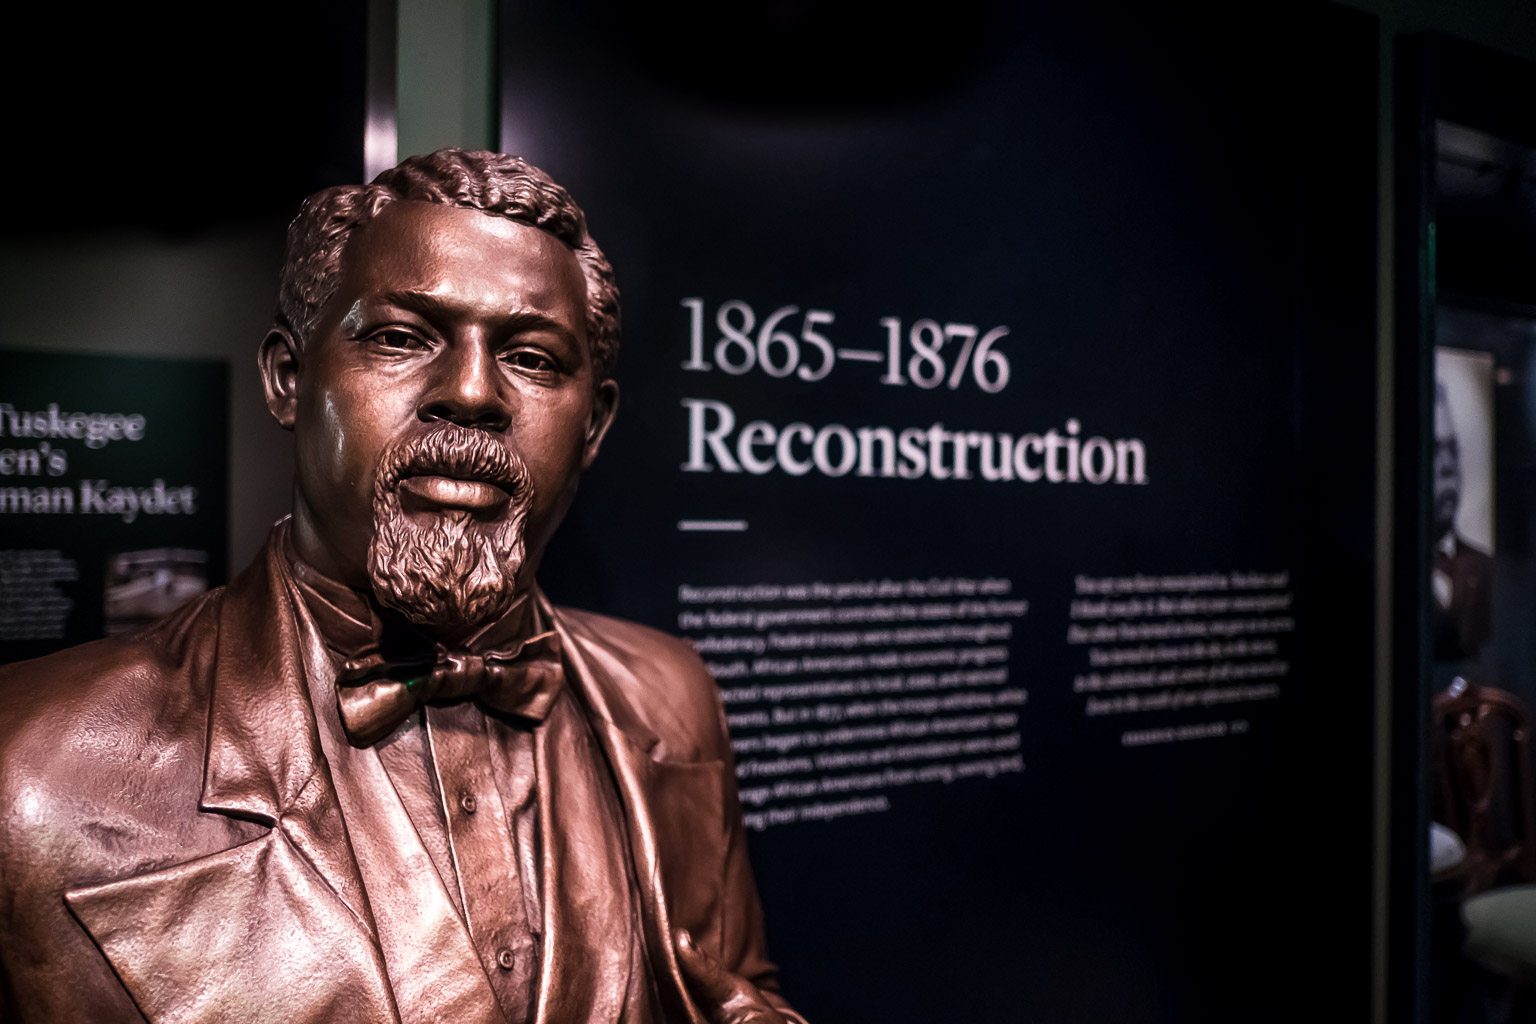 Robert Smalls. He began his life enslaved and willed himself to become a U.S. Congressman. Remember him the next time you think something you're facing is too hard to do.